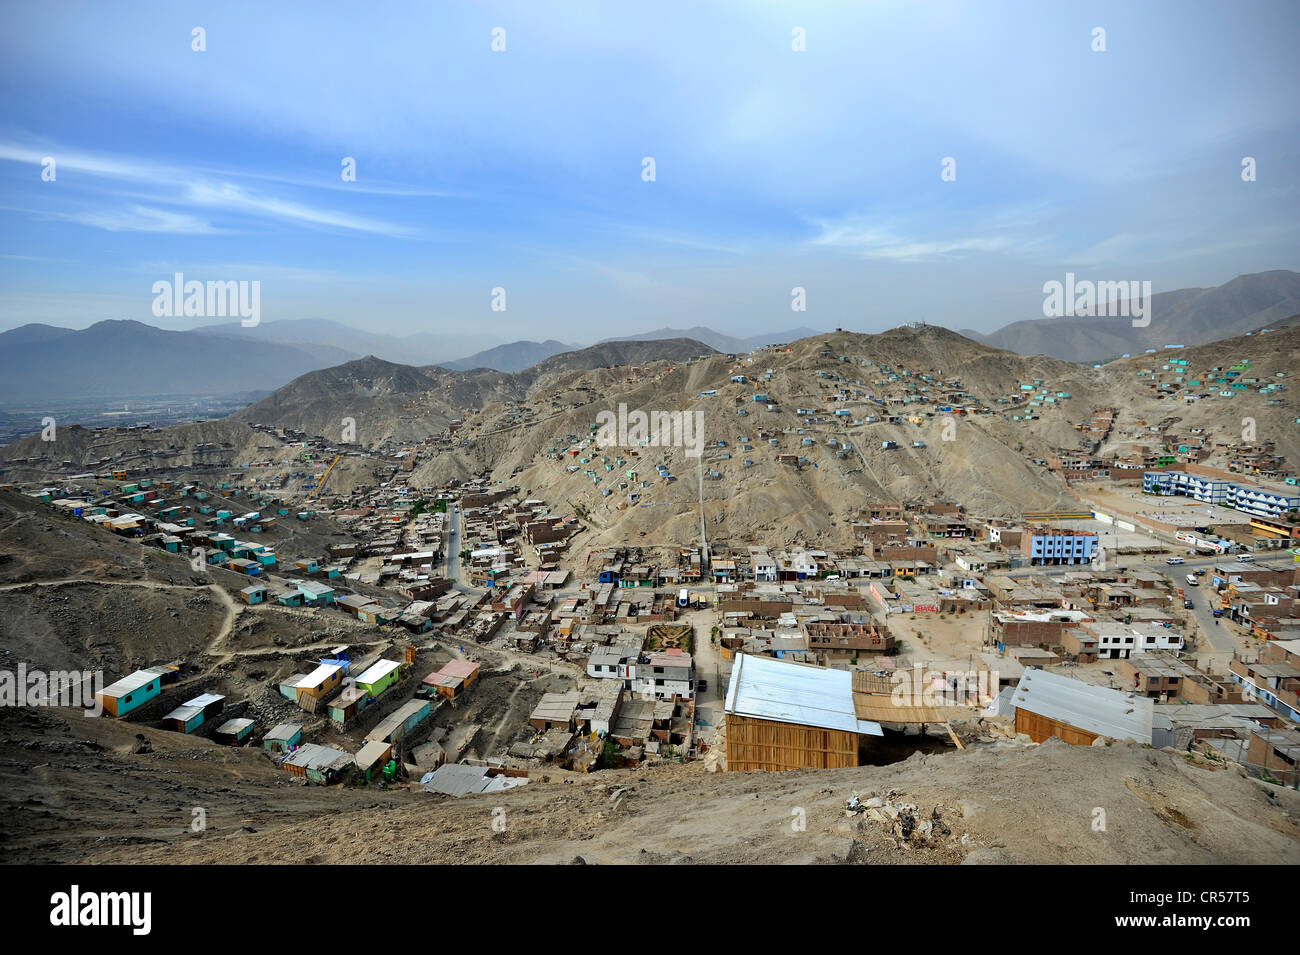 Houses built on sandy slopes in the dry desert climate, slums of Amauta, Lima, Peru, South America Stock Photo